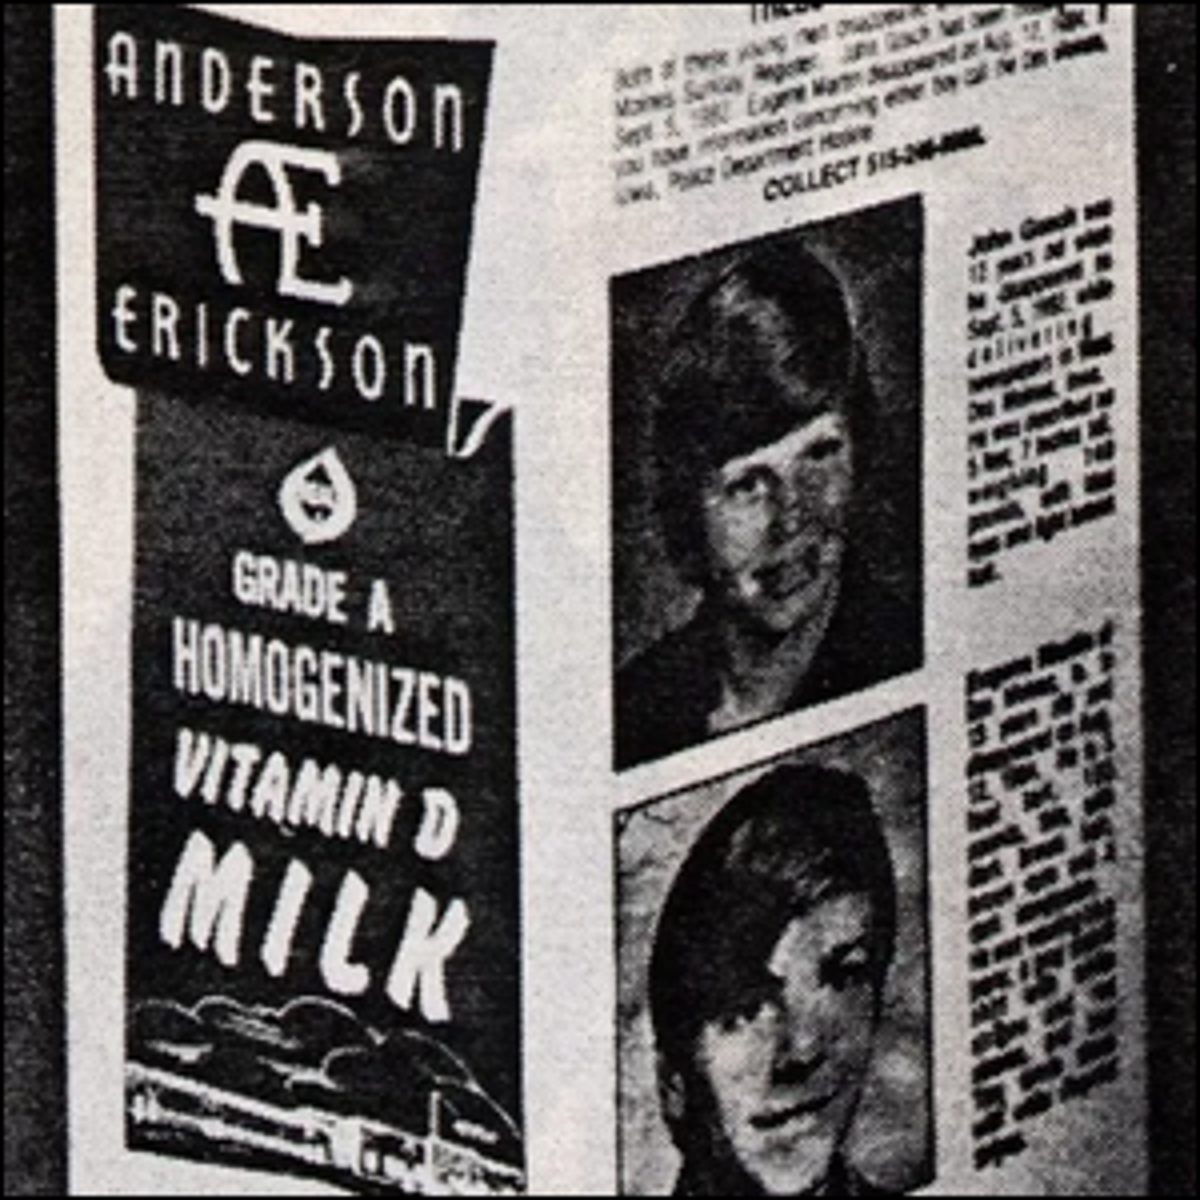 Pictures of two missing children on the side of an Anderson Erickson Dairy milk carton.